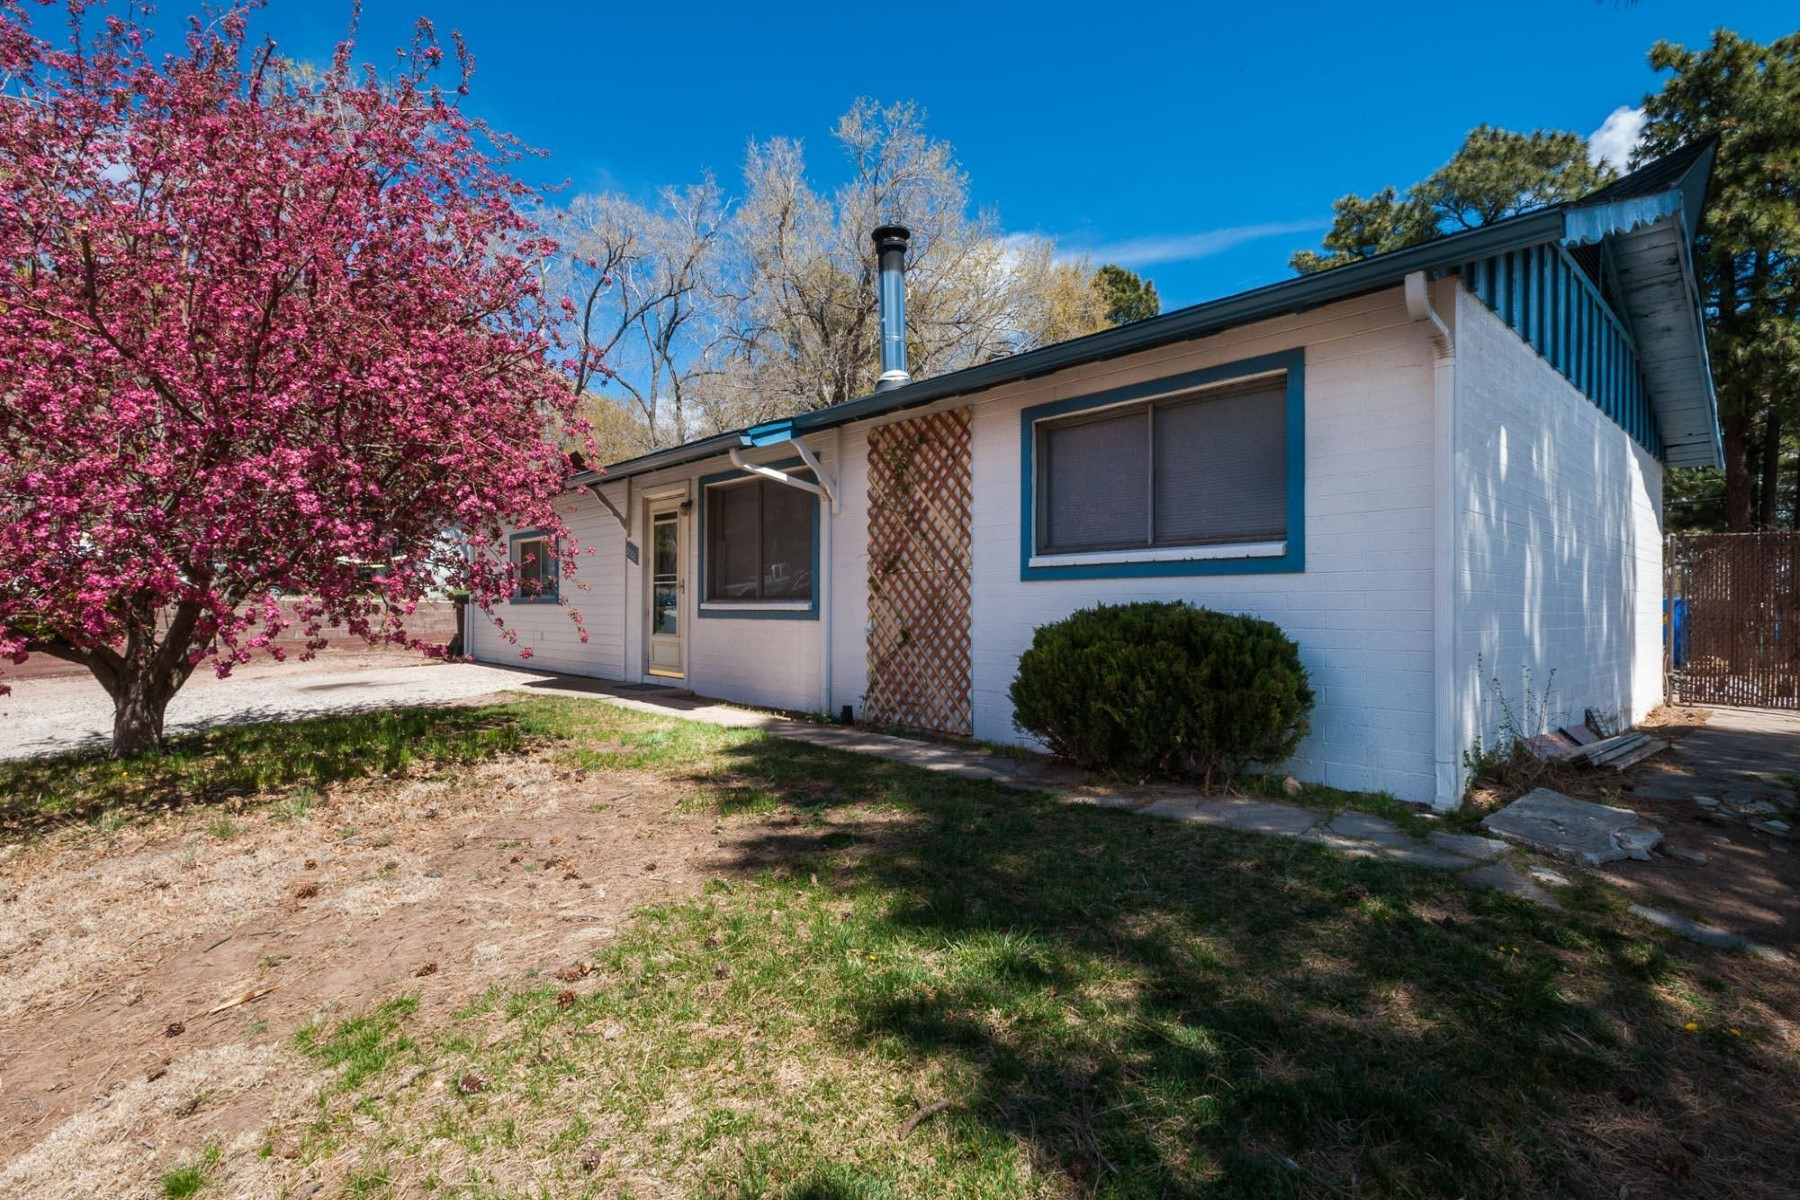 Single Family Home for Sale at Beautifully maintained single level home 3328 N Loma Vista Dr Flagstaff, Arizona, 86004 United States